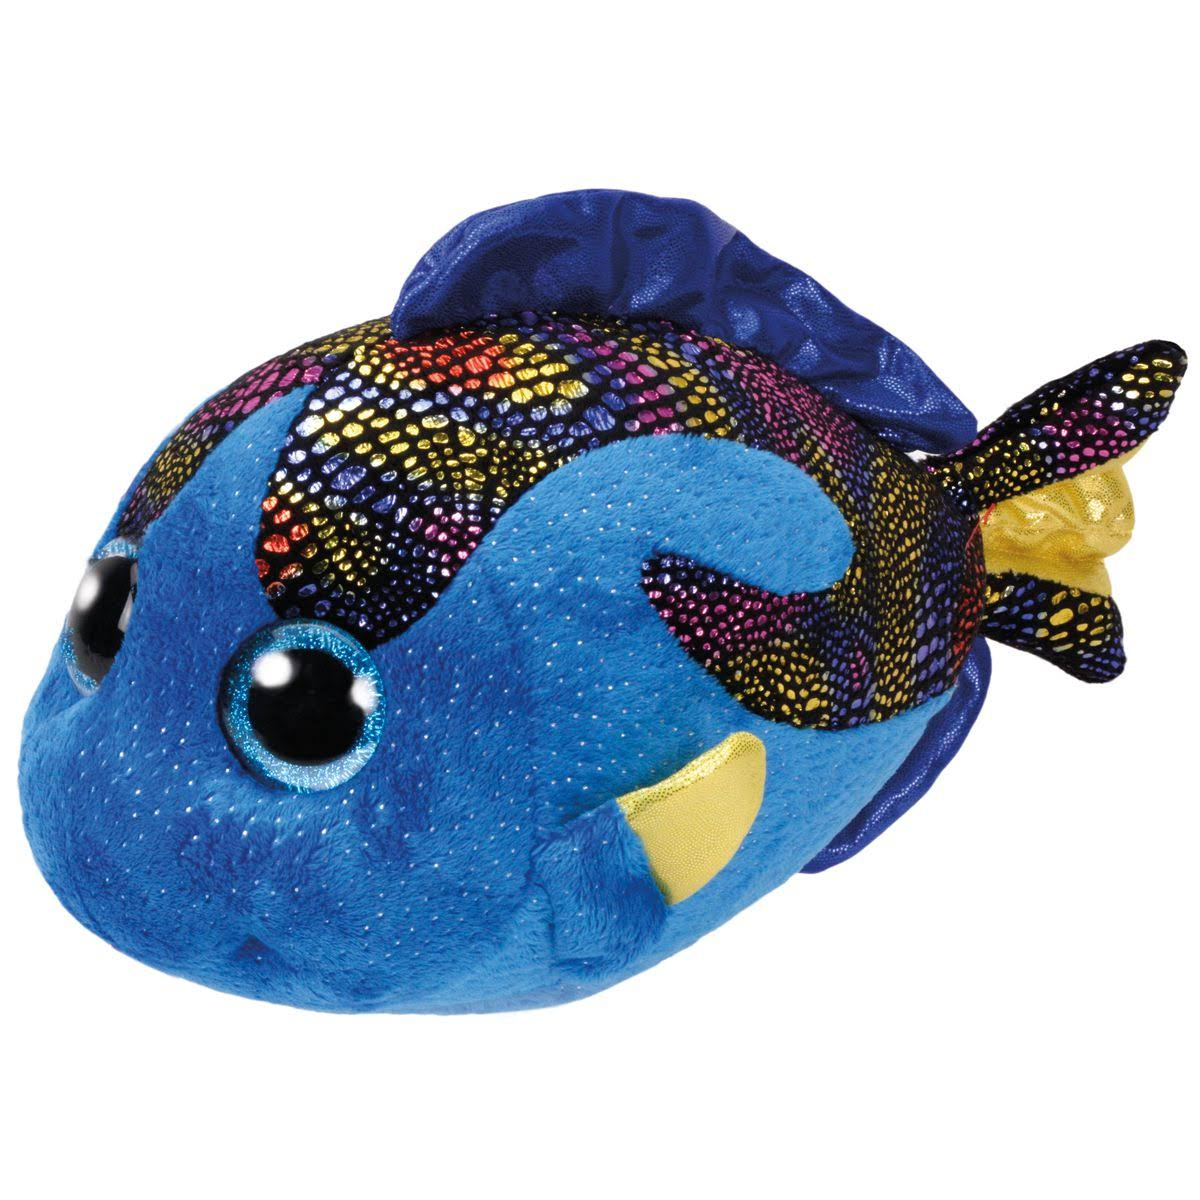 Ty Beanie Boos Aqua The Blue Fish Boo Buddy Plush Toy